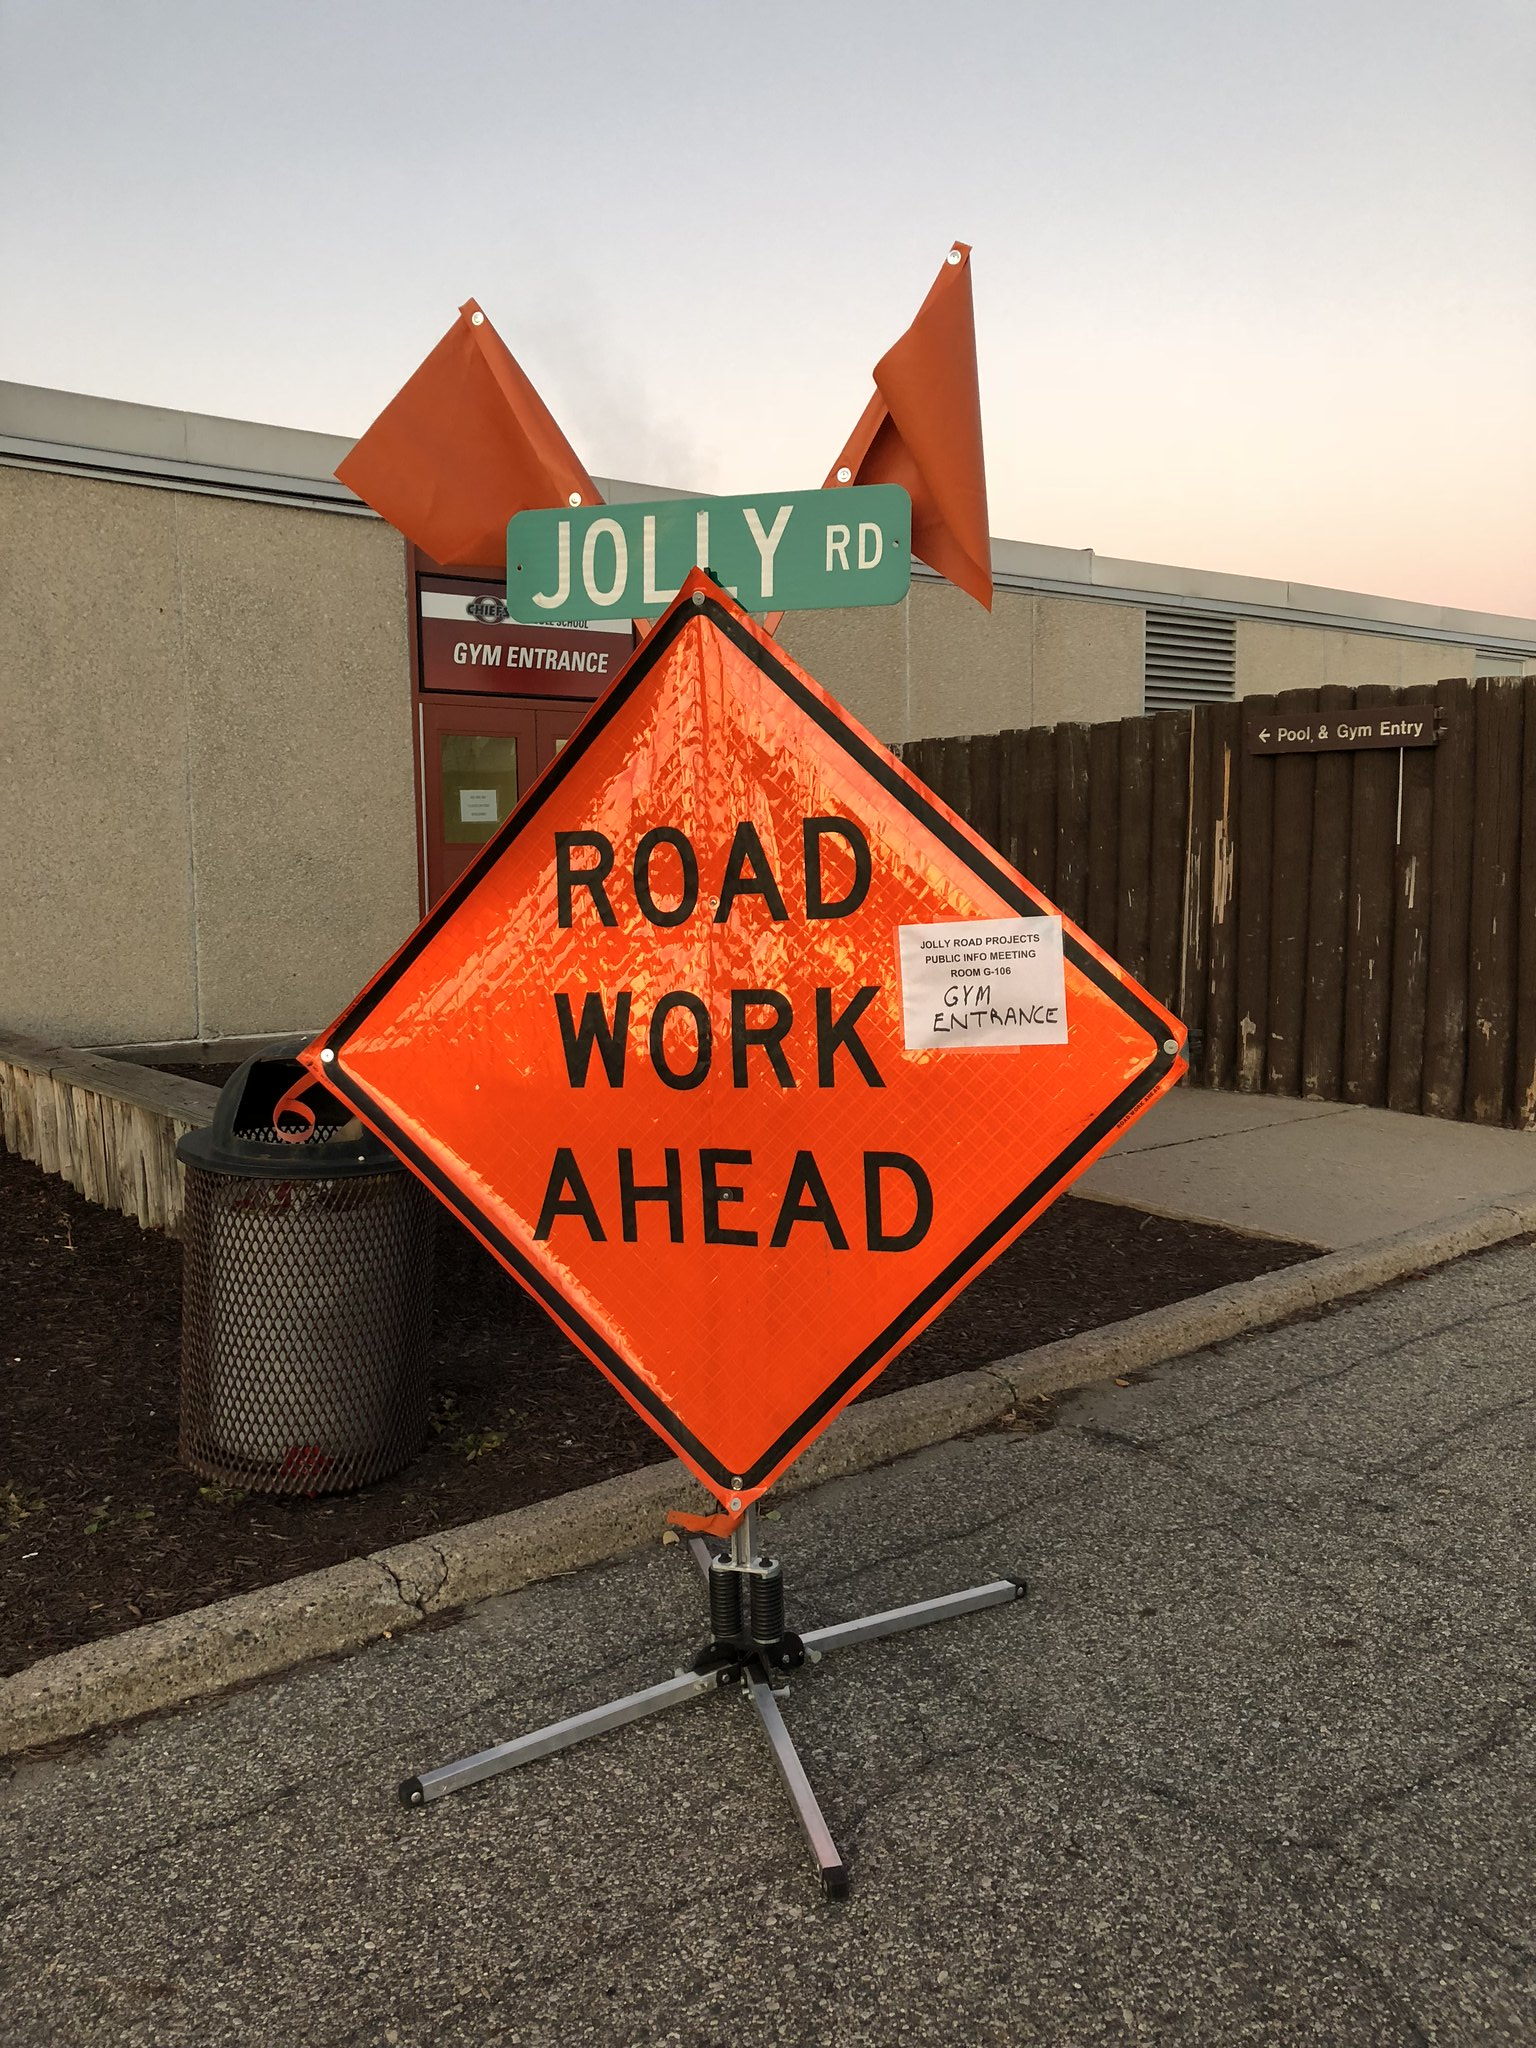 Ingham County Holds Public Meeting on Road Work